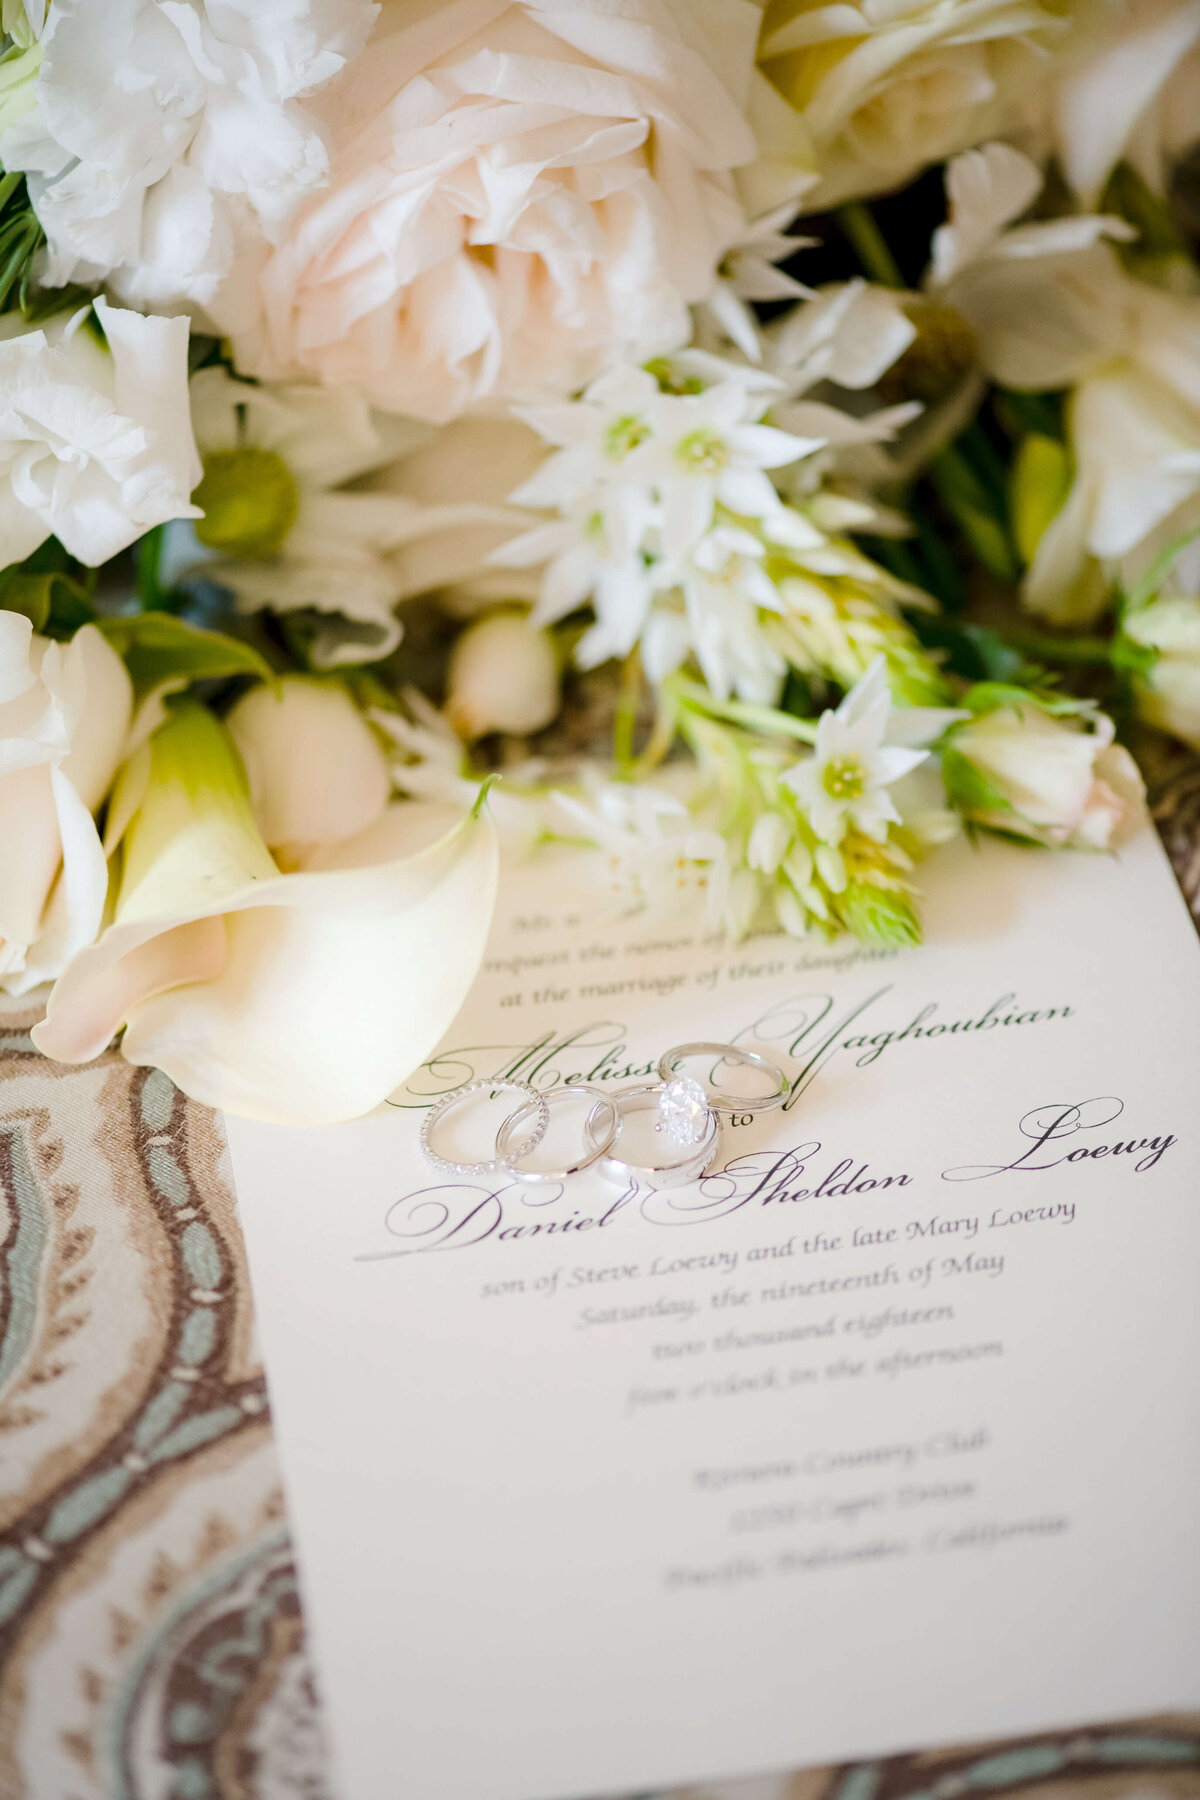 Riviera country club wedding - Karina Pires Photography